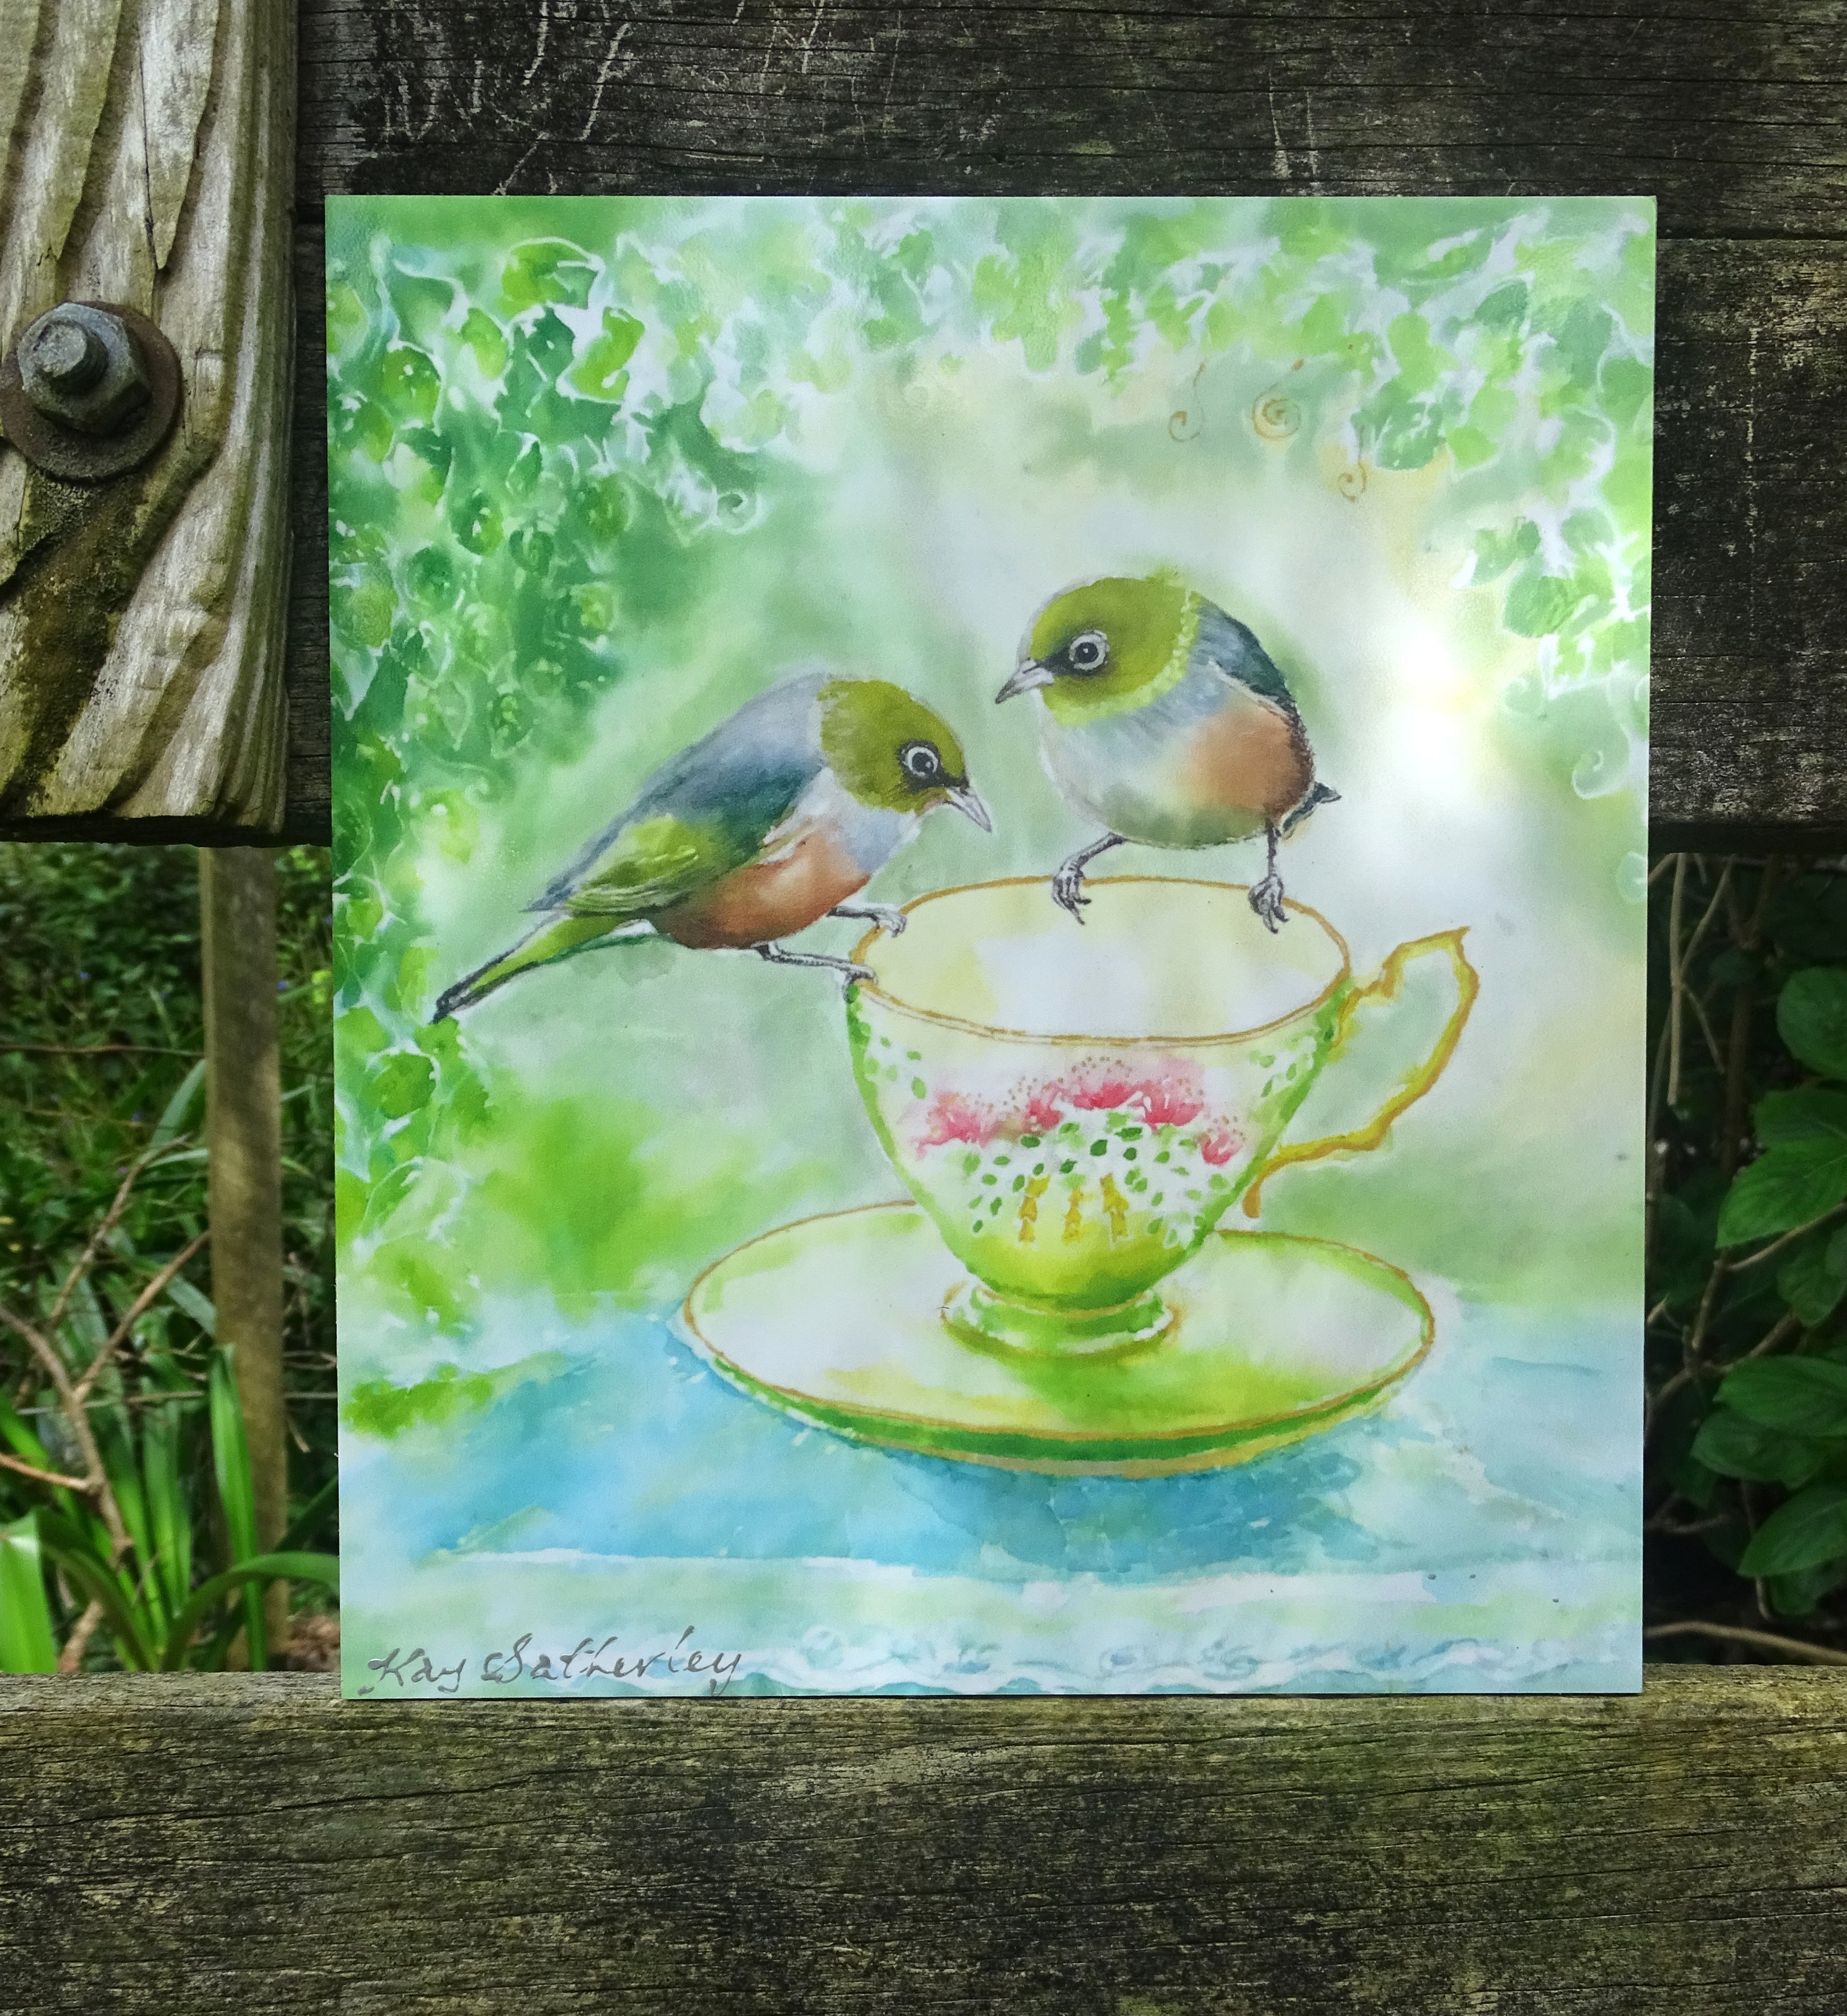 SilverEyes on Teacup - Outdoor Art Panel 25cm x 22cm